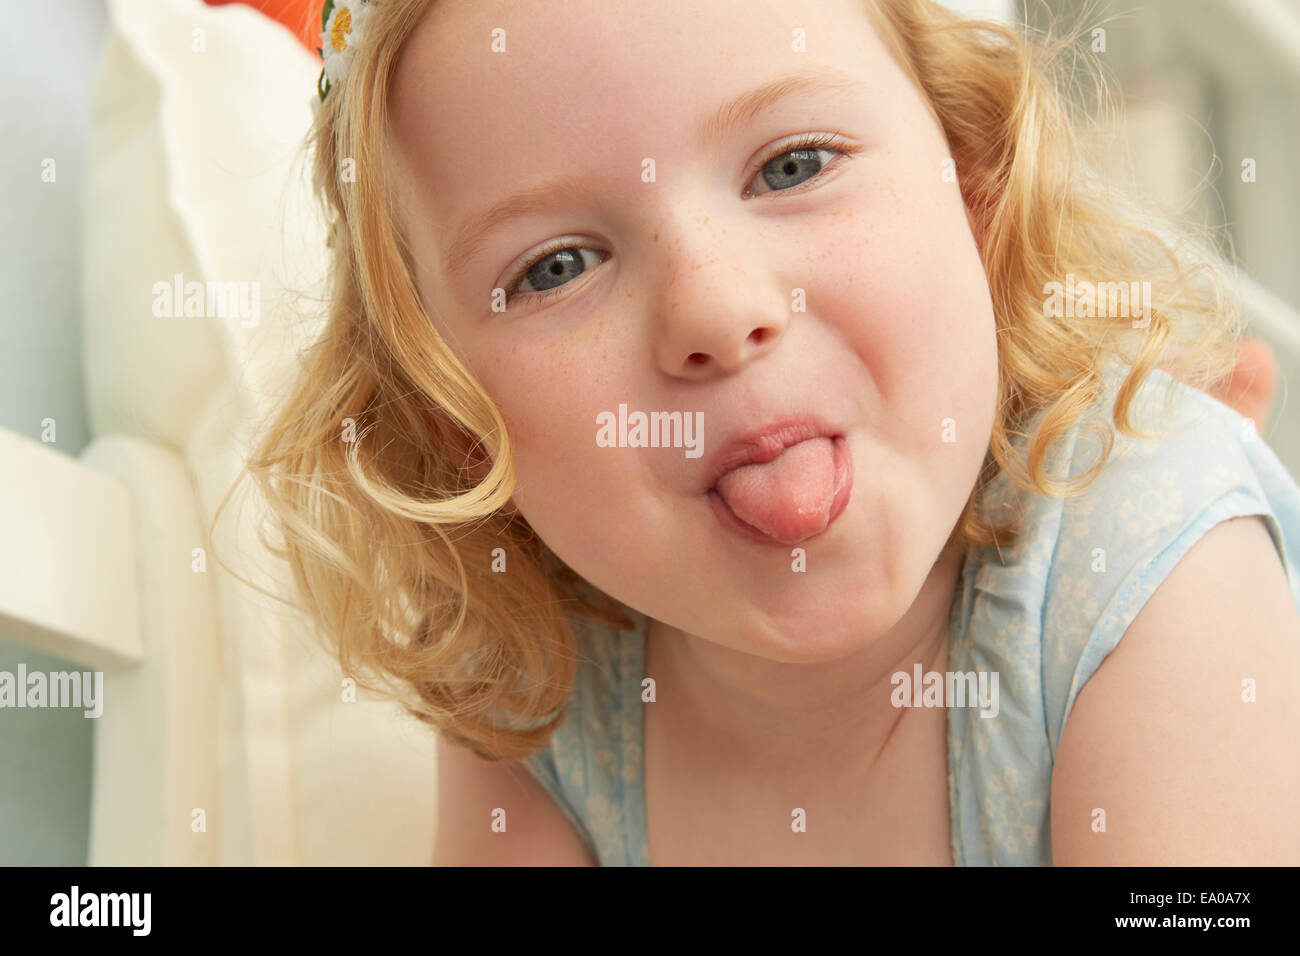 Portrait of girl lying on seat sticking tongue out - Stock Image